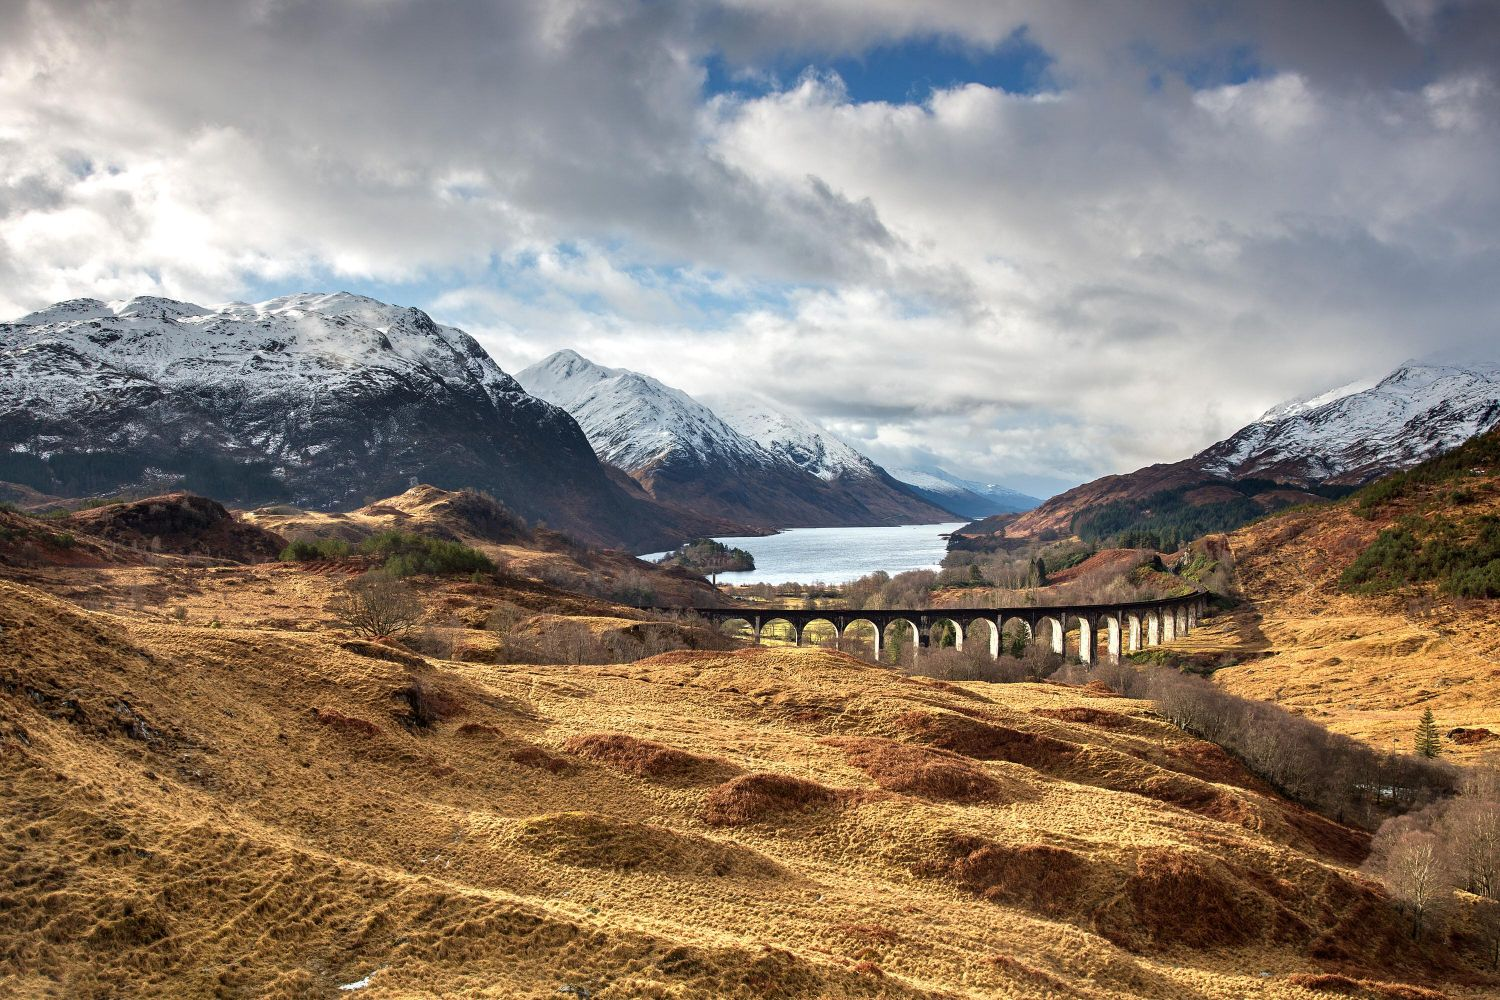 TheGlenfinnan Viaduct and Loch Shiel made famous in the Harry Potter films.